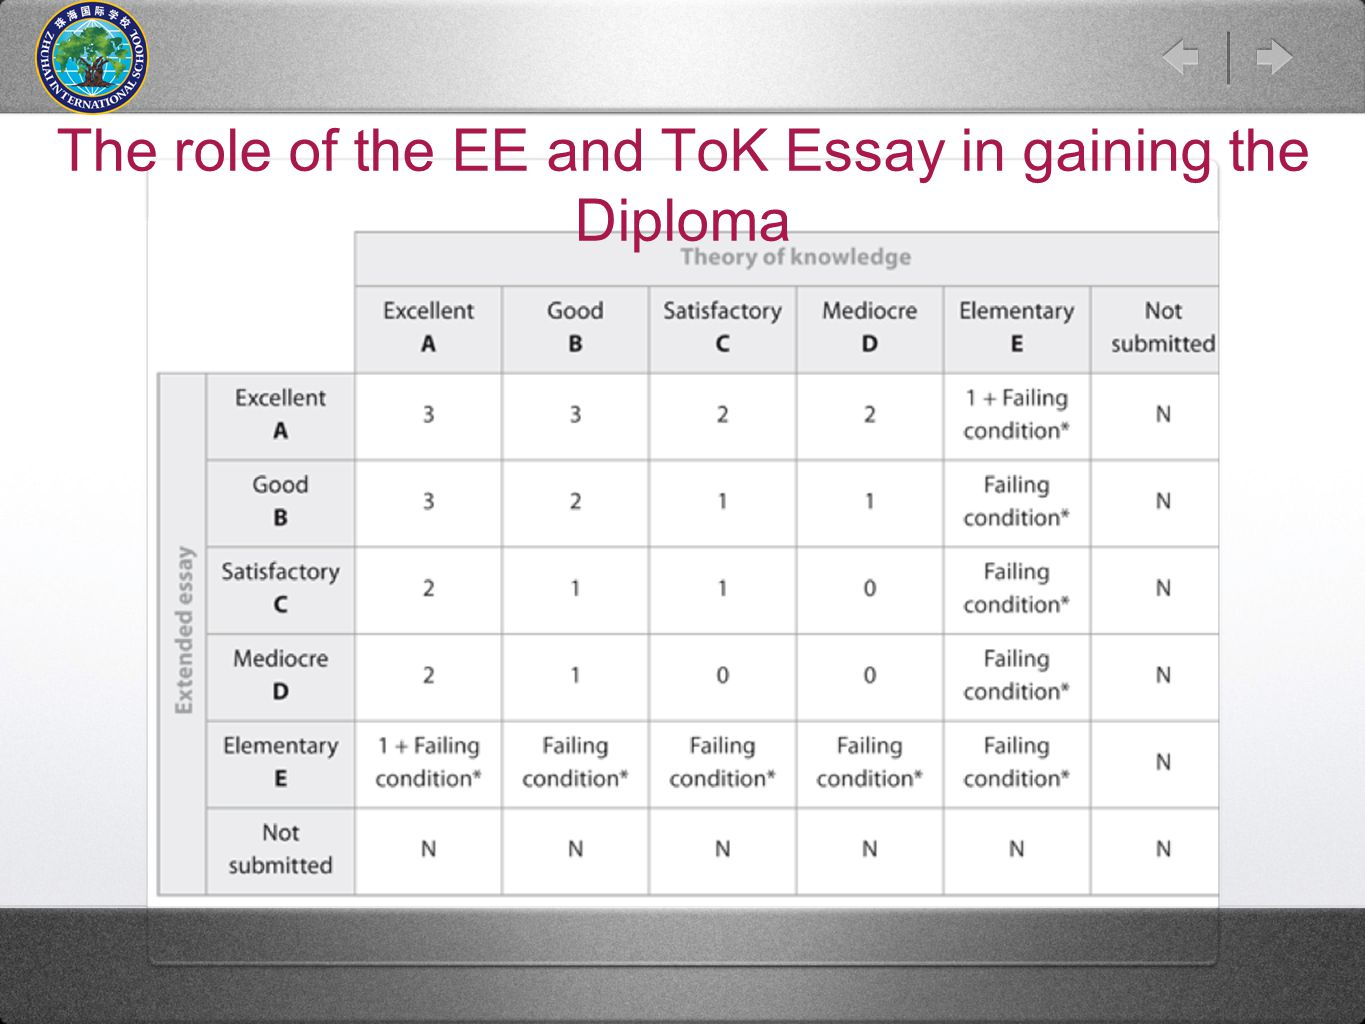 The role of the EE and ToK Essay in gaining the Diploma